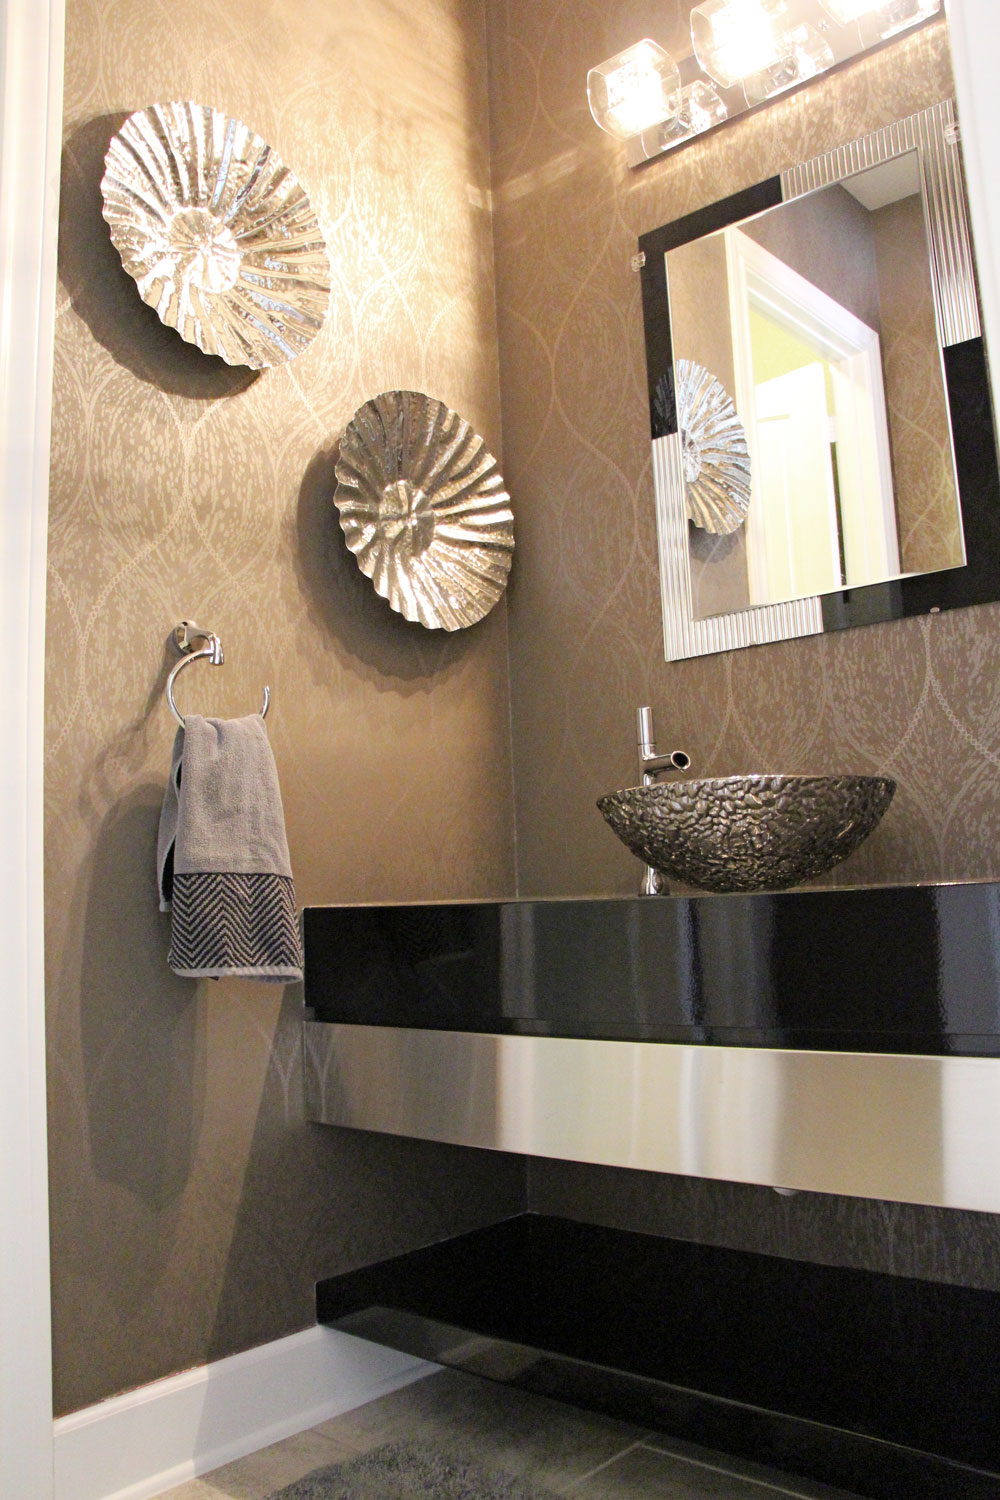 Liz-Light-Interiors-Bathroom-1.jpg